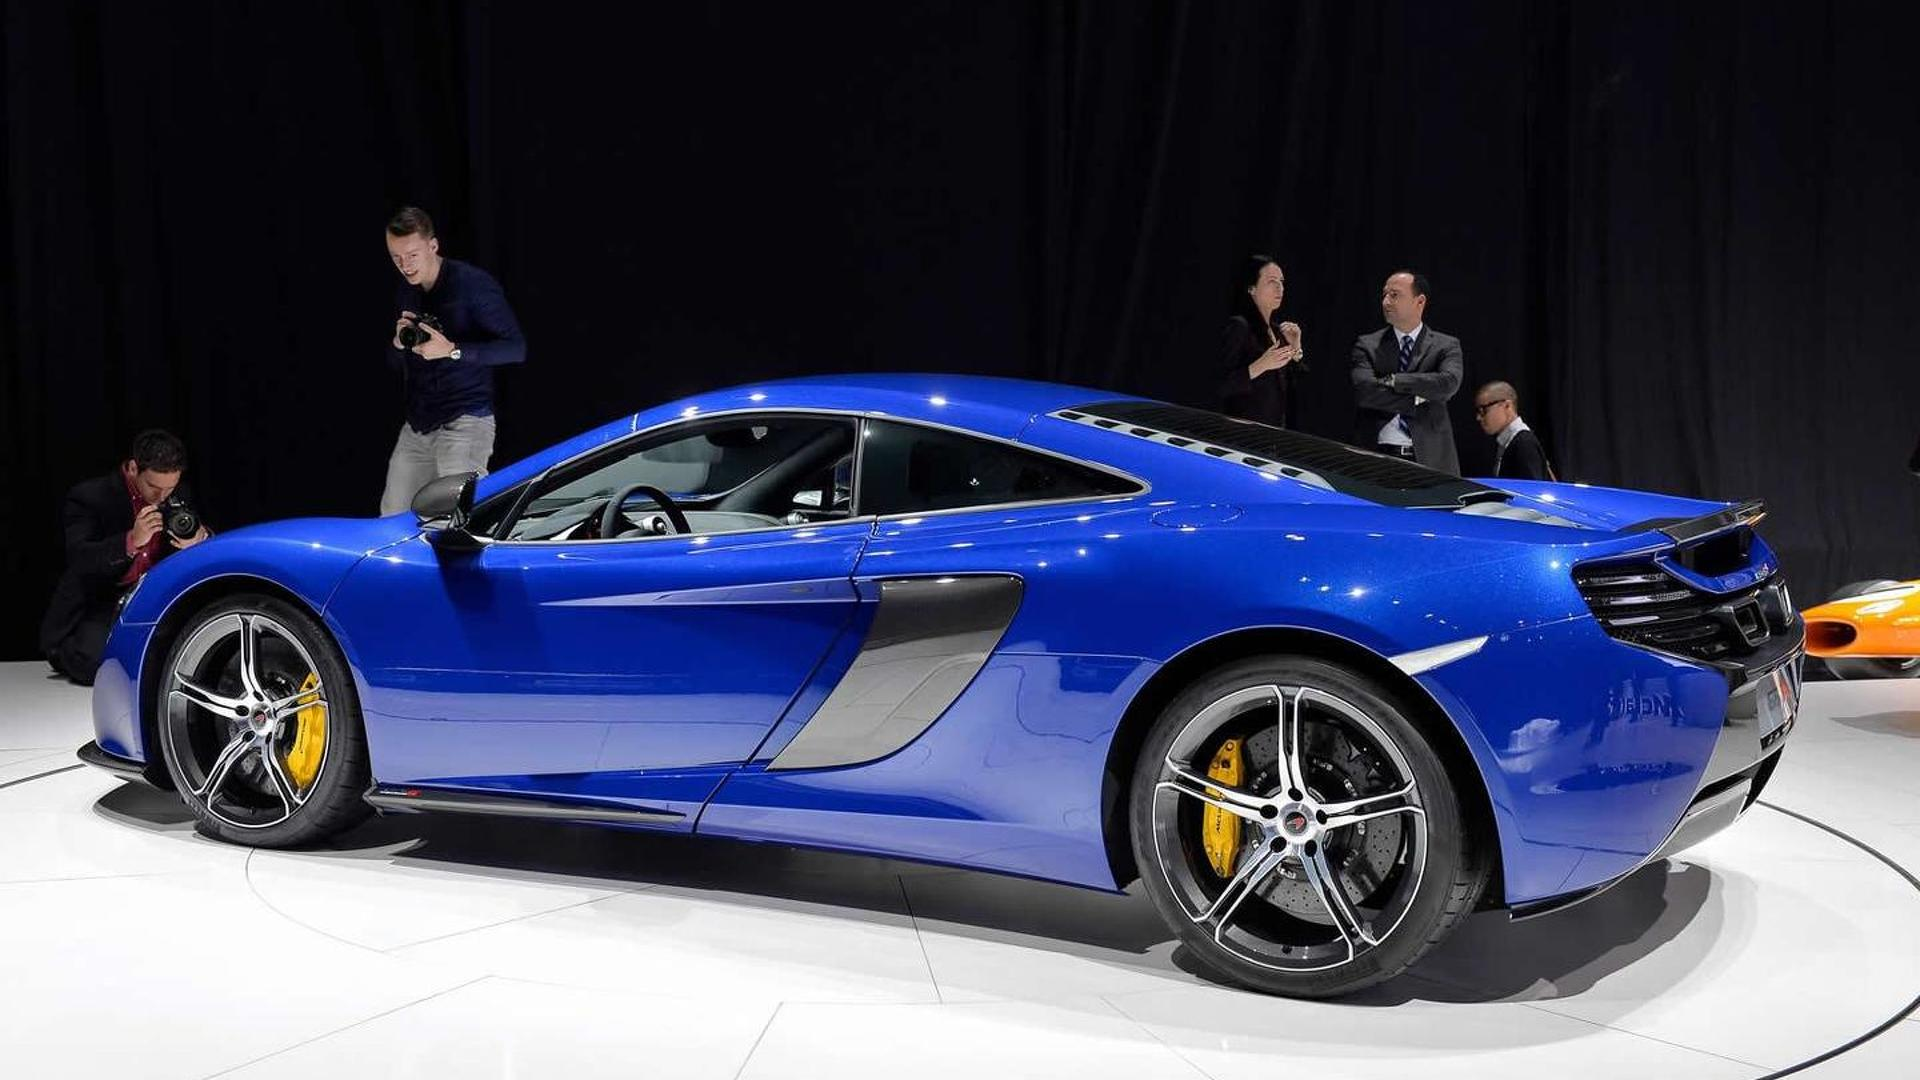 McLaren says they won't build an SUV/crossover